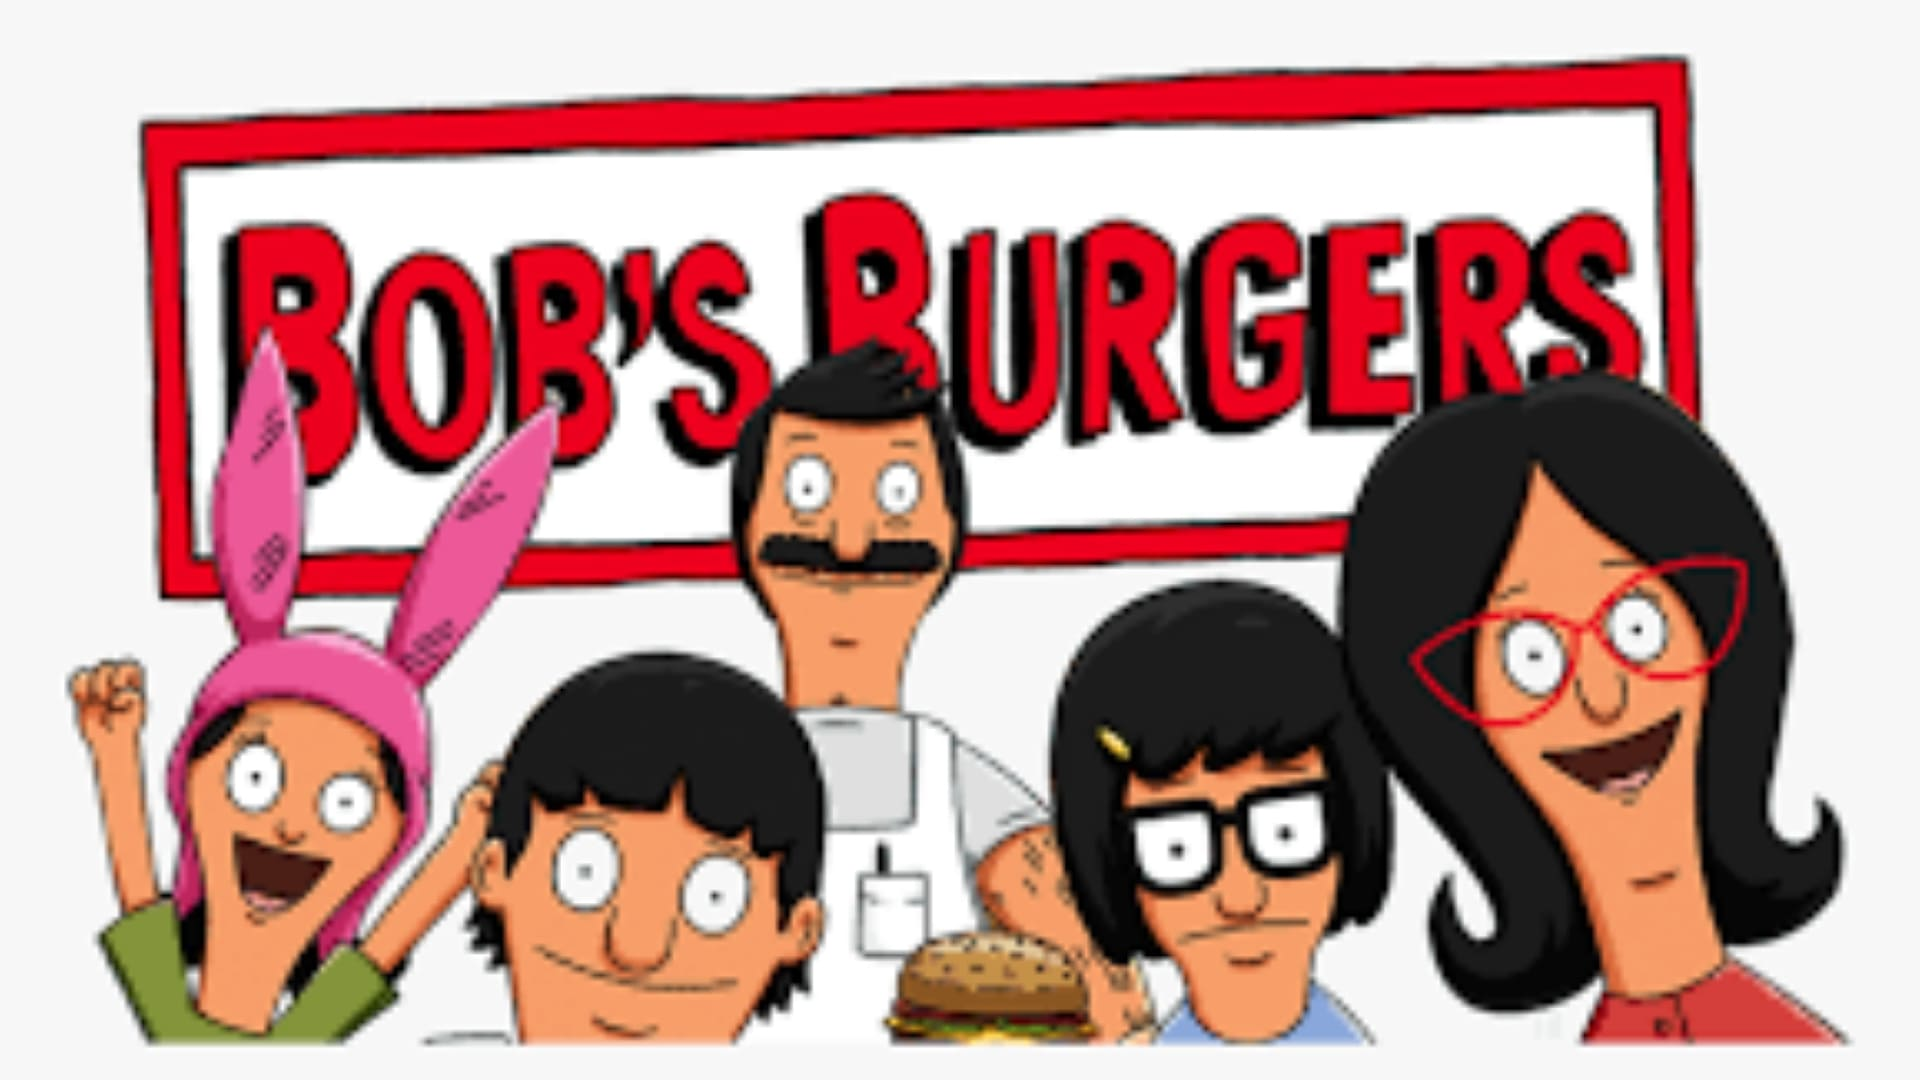 Bobs Burgers wallpapers